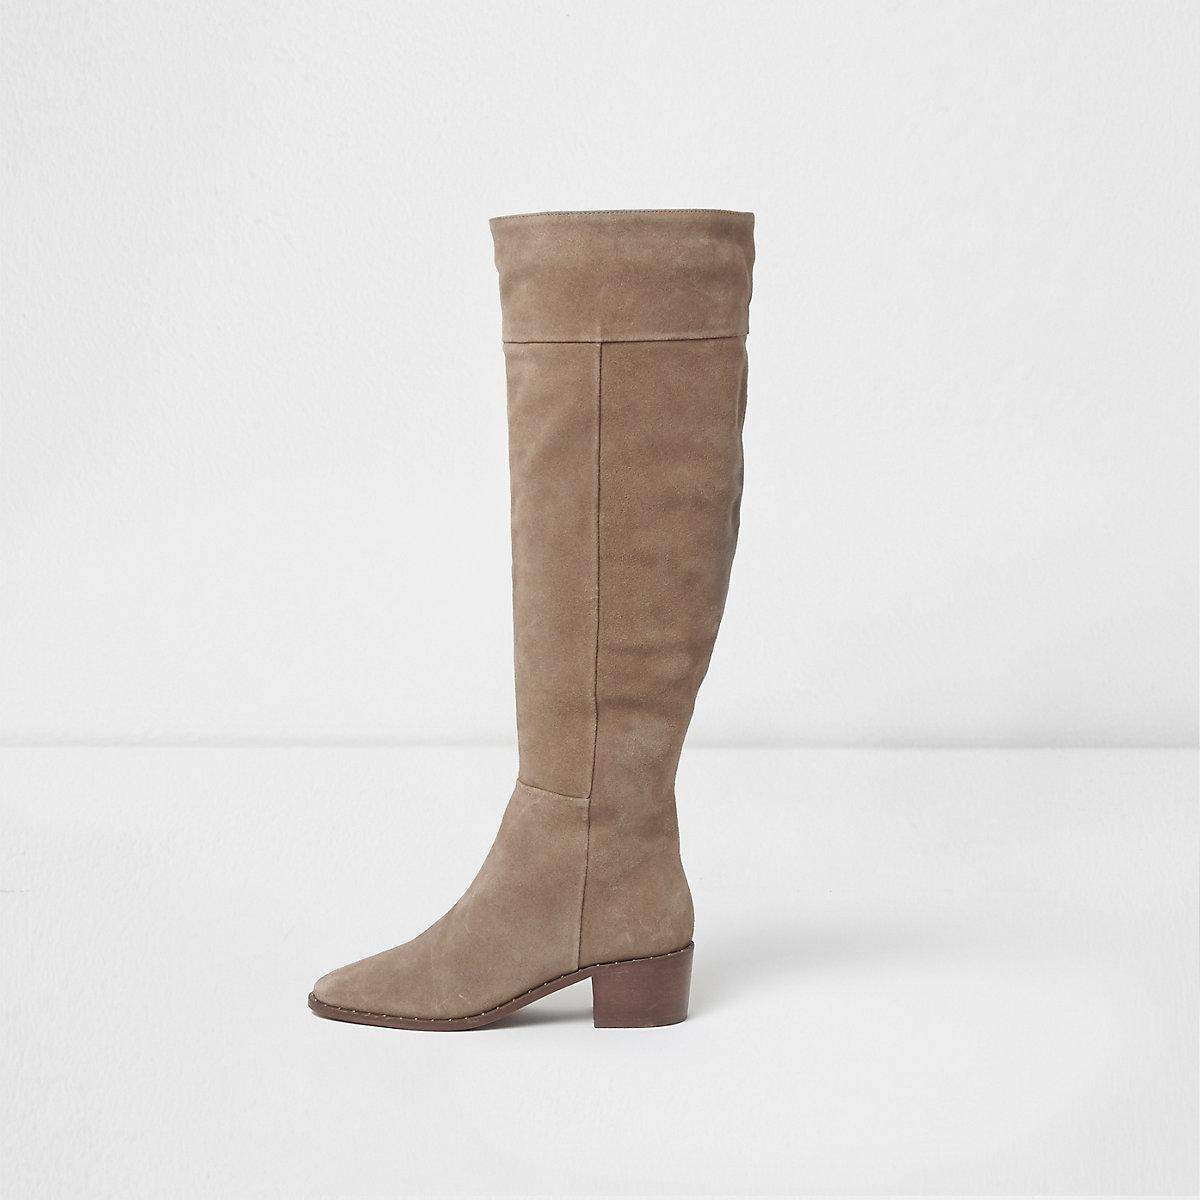 Beige suede studded knee high suede boots